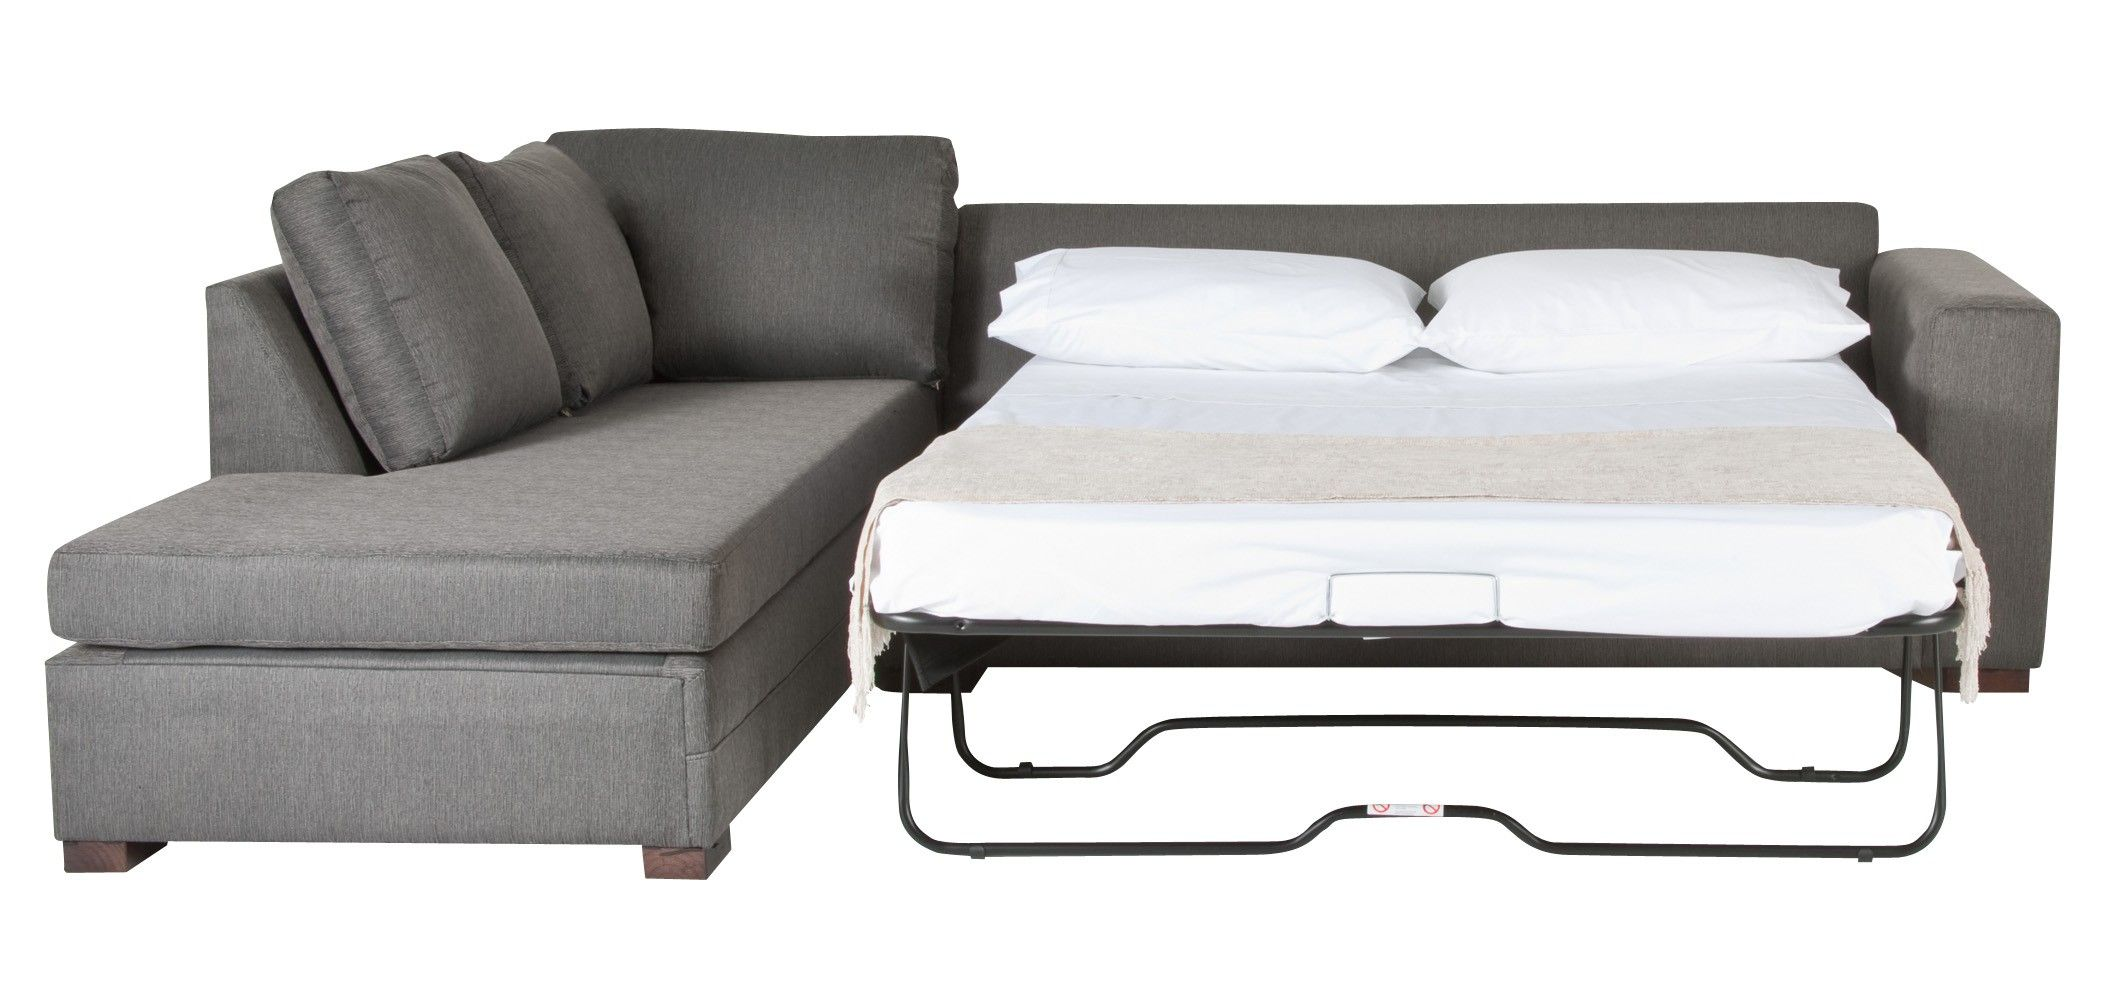 Full Size Sectional Sleeper Sofa Hideaway Bed Couch Pull Out